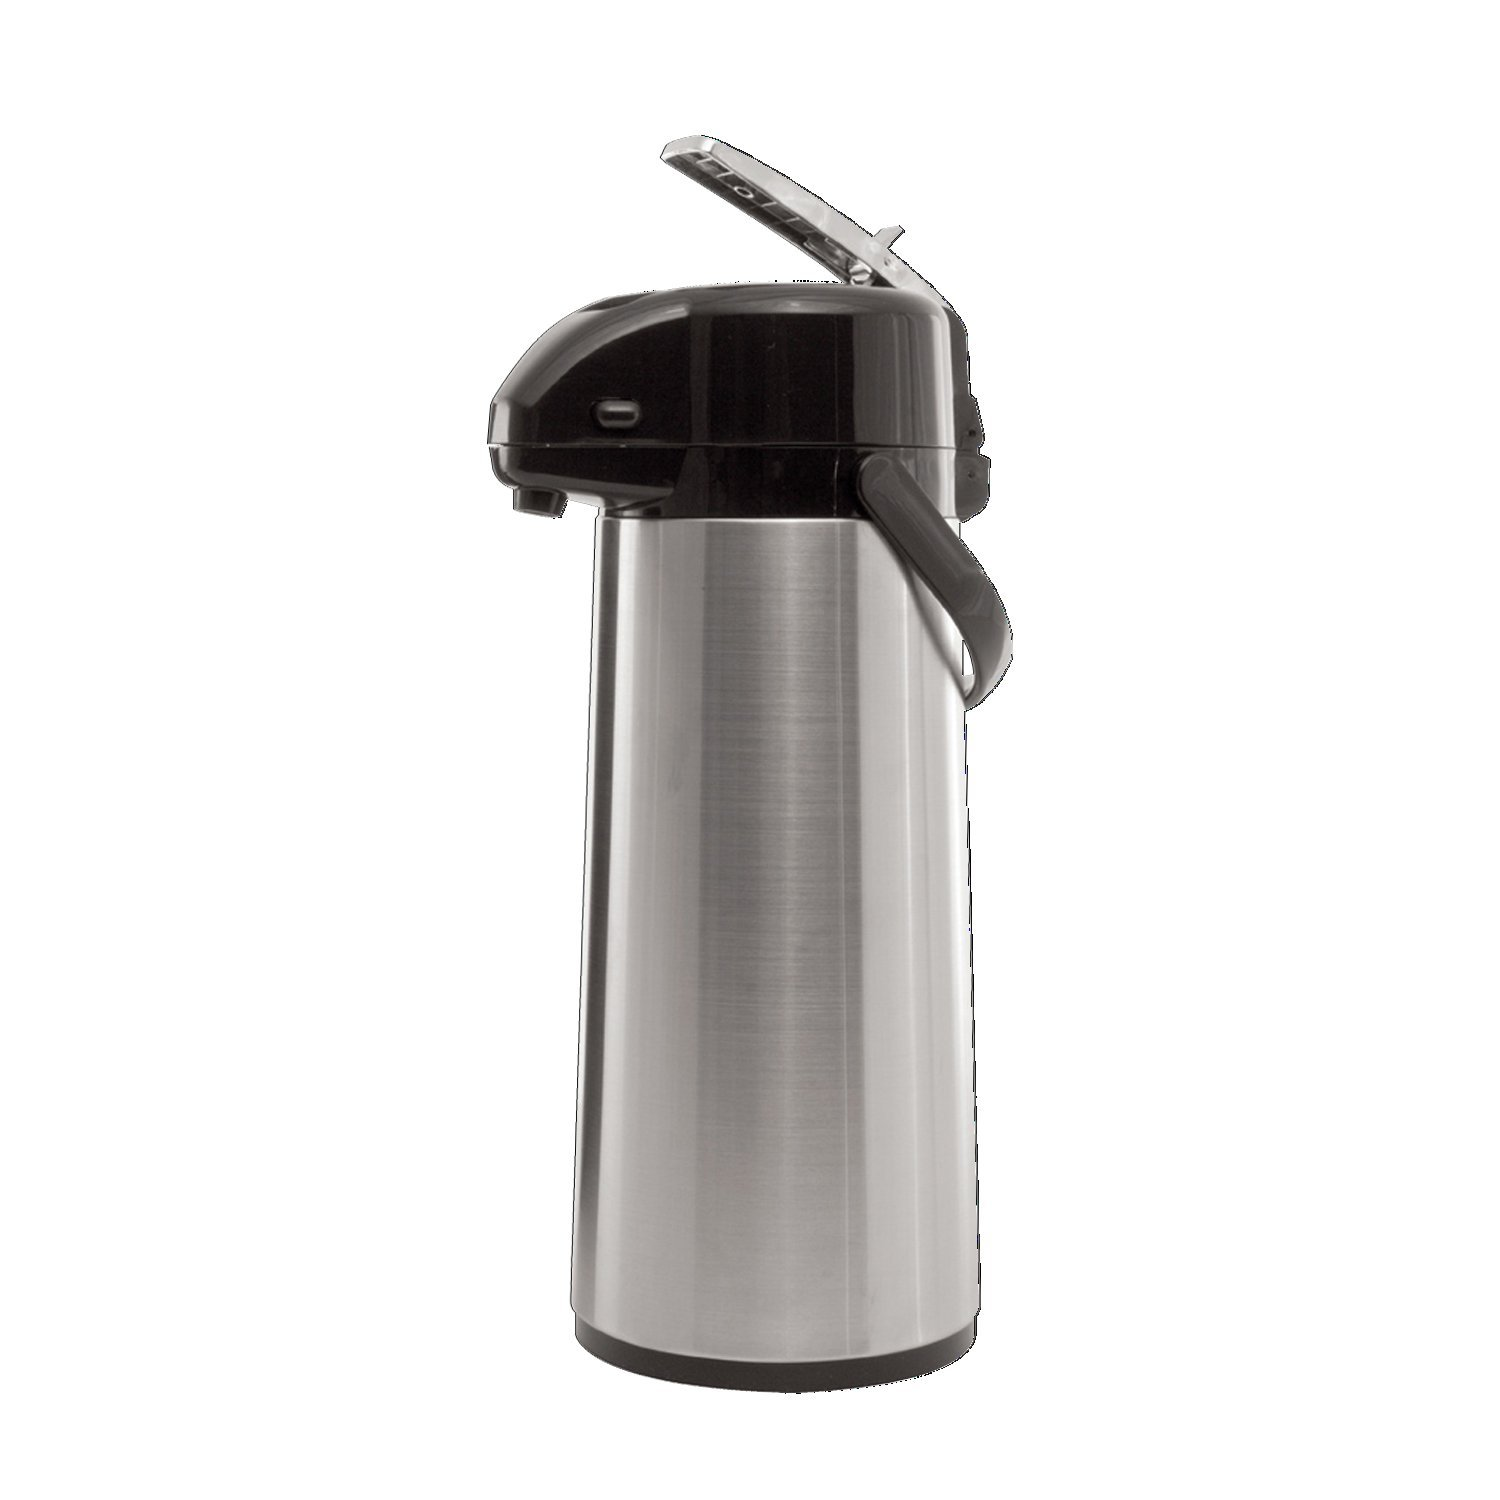 Service Ideas AYS30S Economy Airpot with Lever 3 L Stainless Steel Lined